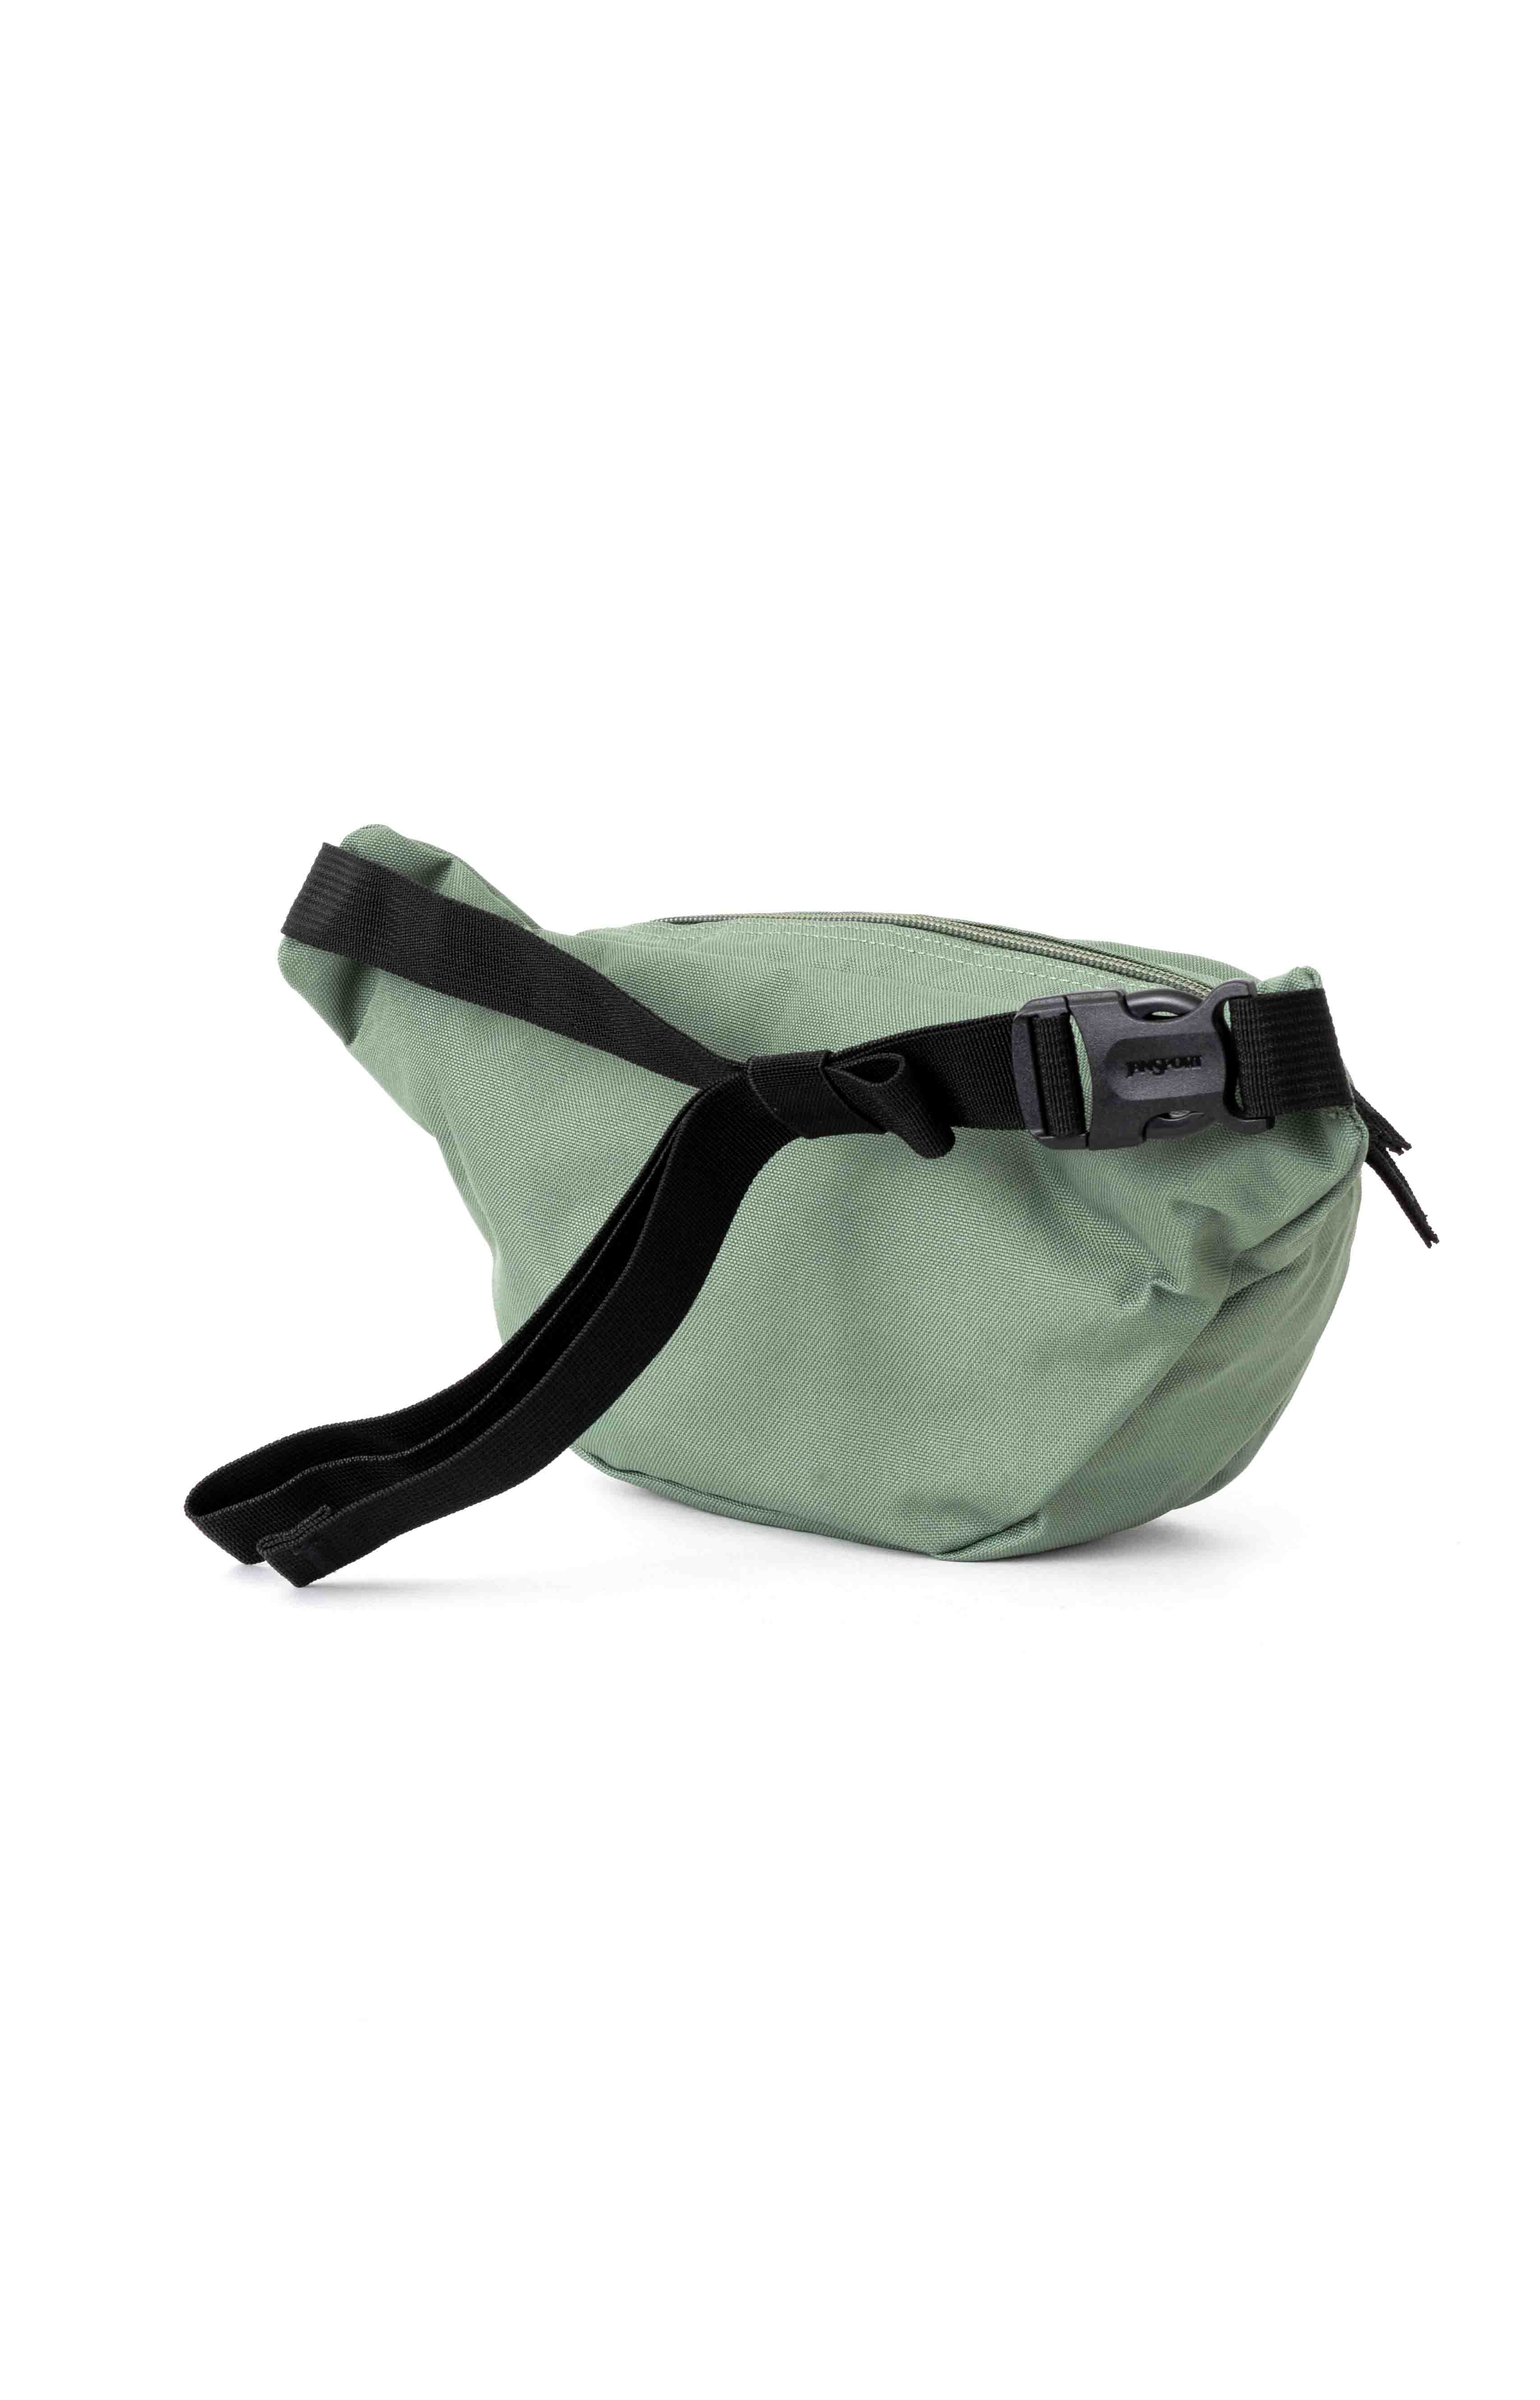 Fifth Avenue Pack - Muted Green  3